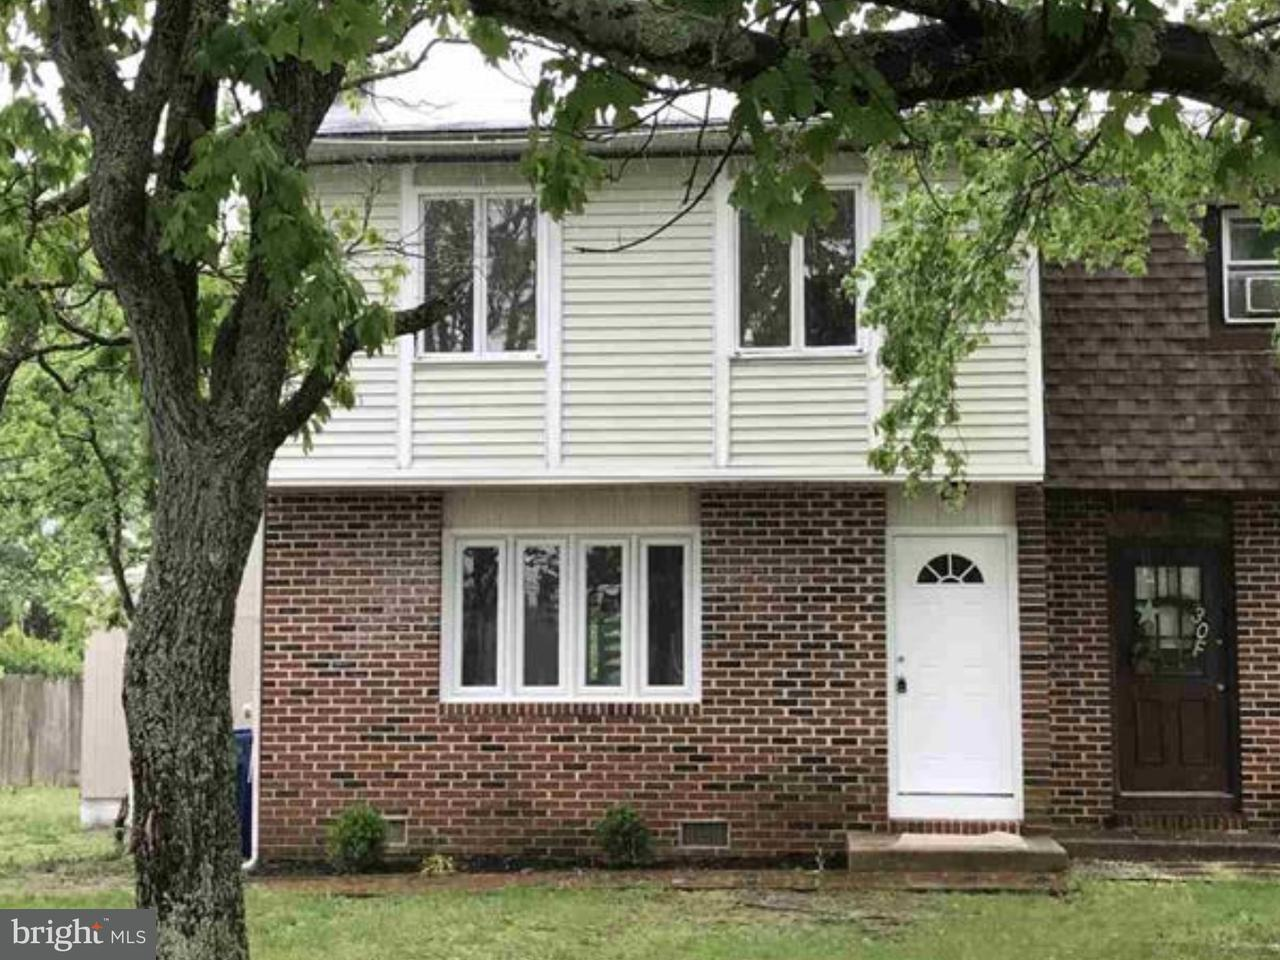 Townhouse for Sale at 30 NEW BRIDGE RD #E Ocean View, New Jersey 08230 United States